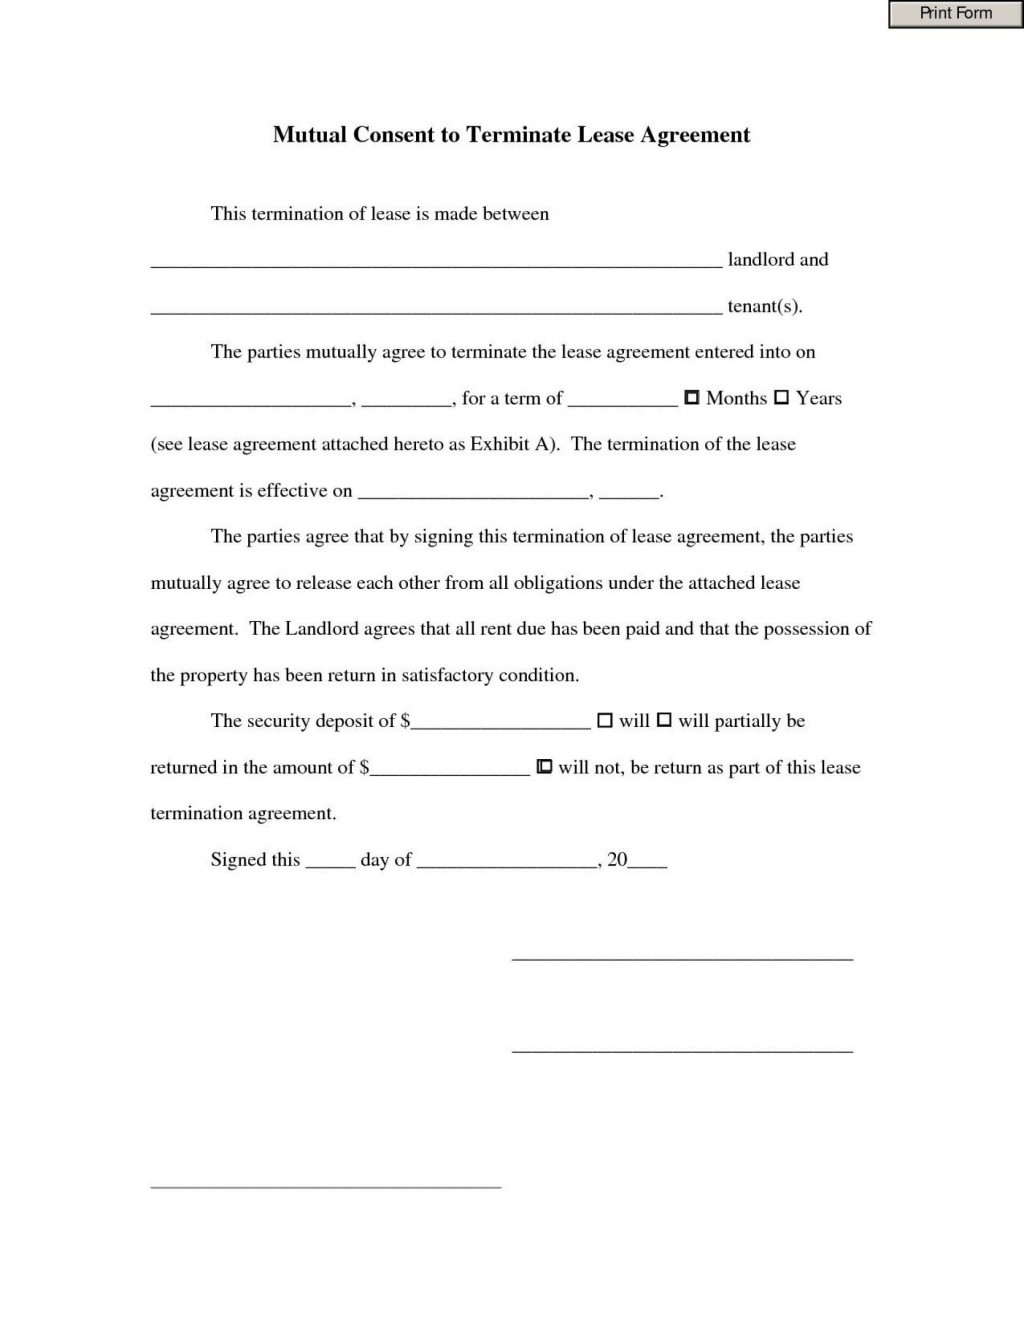 008 Excellent Template For Terminating A Lease Agreement Inspiration  Rental Sample LetterLarge